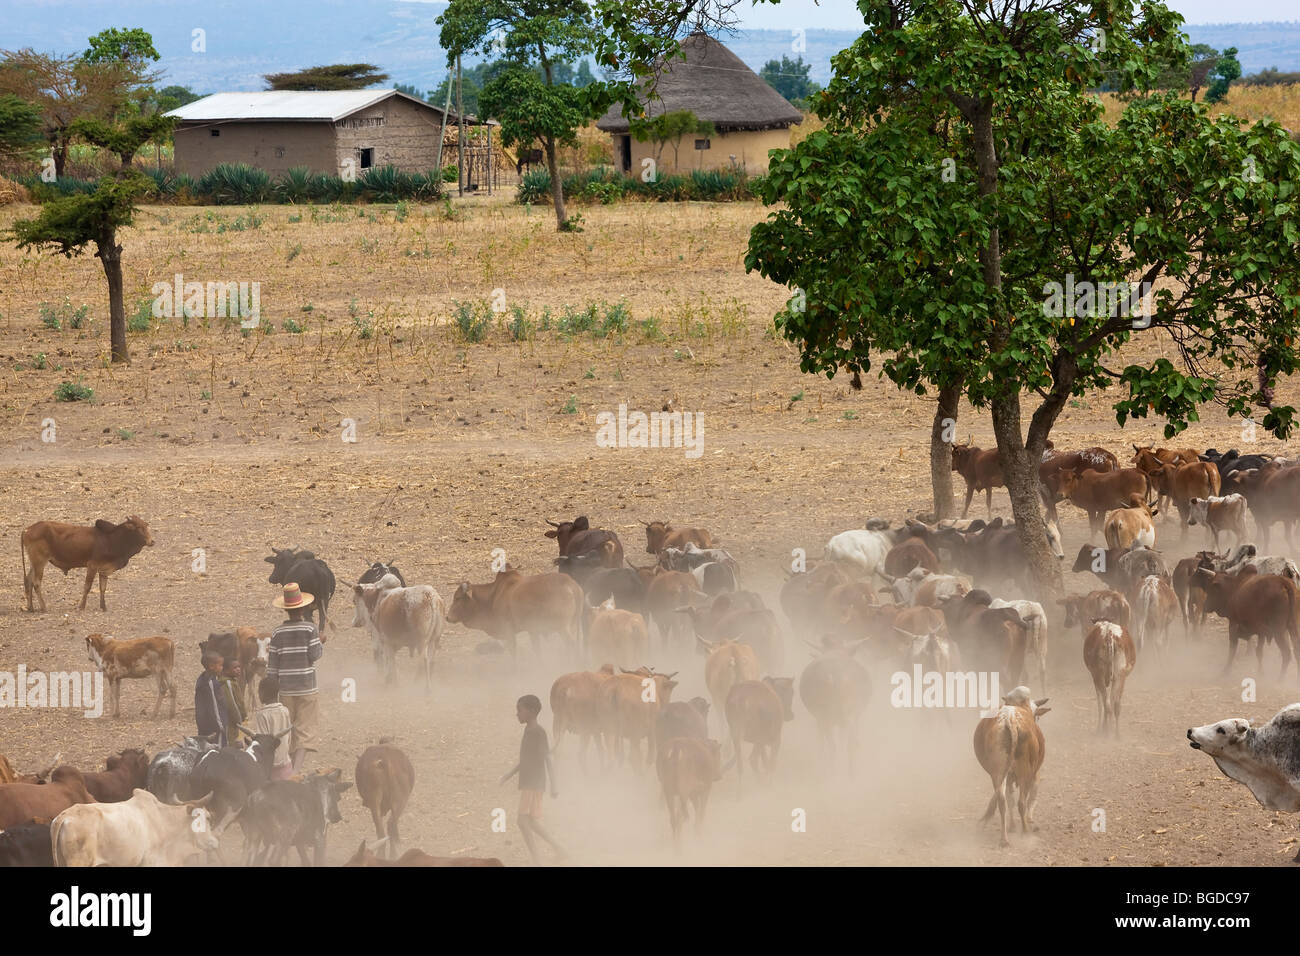 Cows returning from watering hole, Halaba, Ethiopia - Stock Image